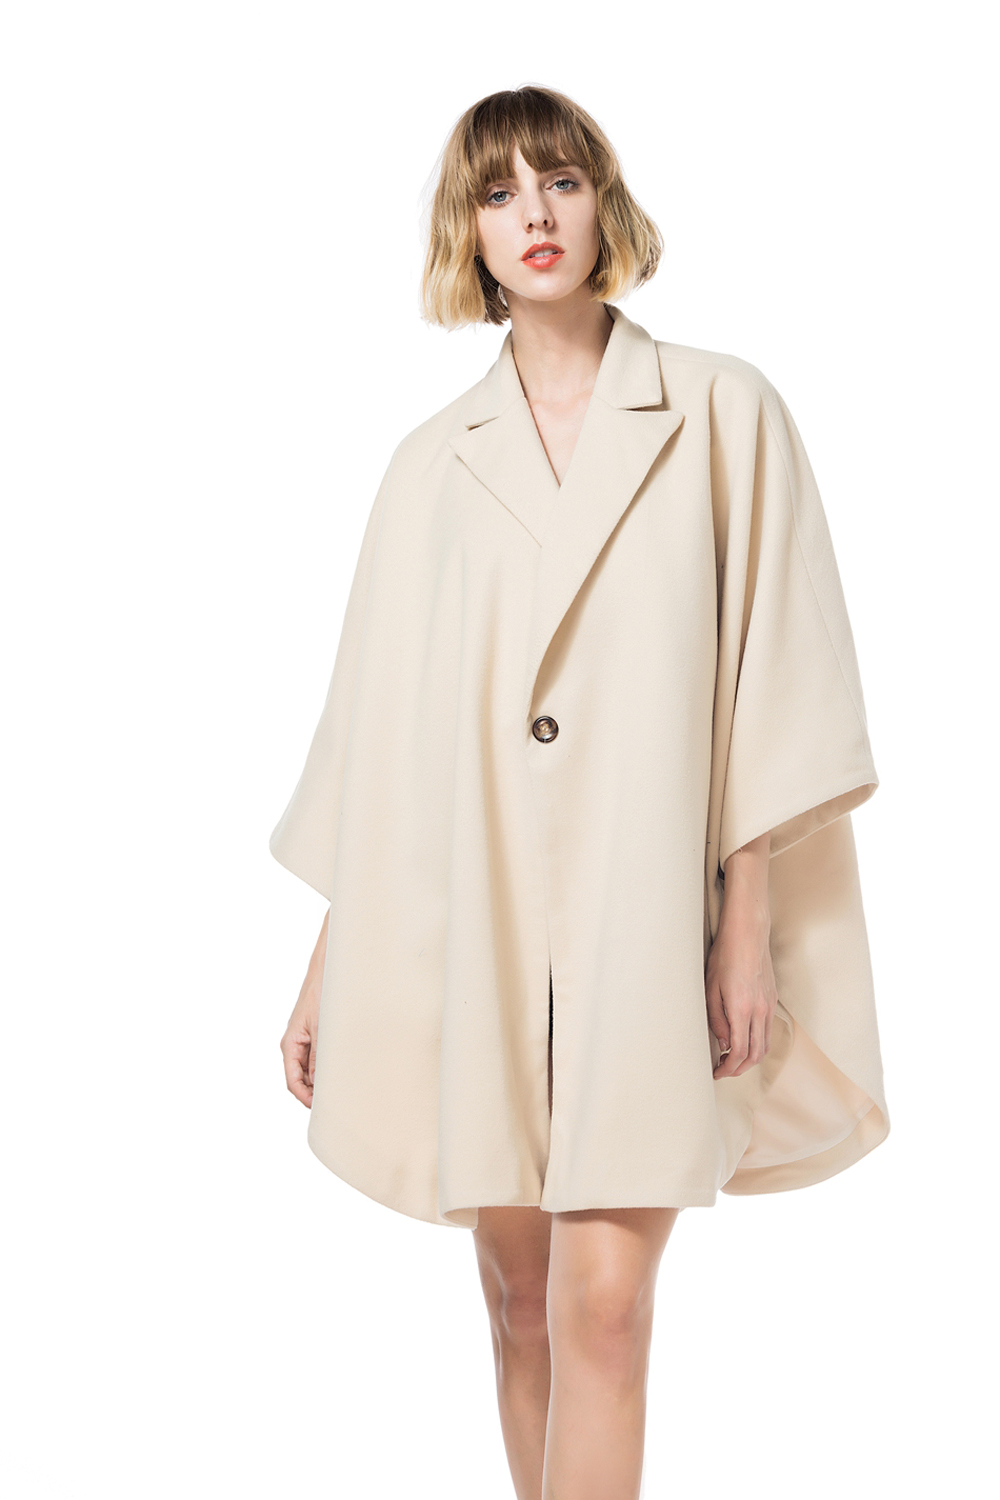 Maternity Solid Wool Poncho Cape Vintage Soft Loose Fitting Cardigan lapel Collar Worsted Poncho Coat 1 button hot sale butterfly and flower pattern feather pendant loose cloak coat poncho cape for women